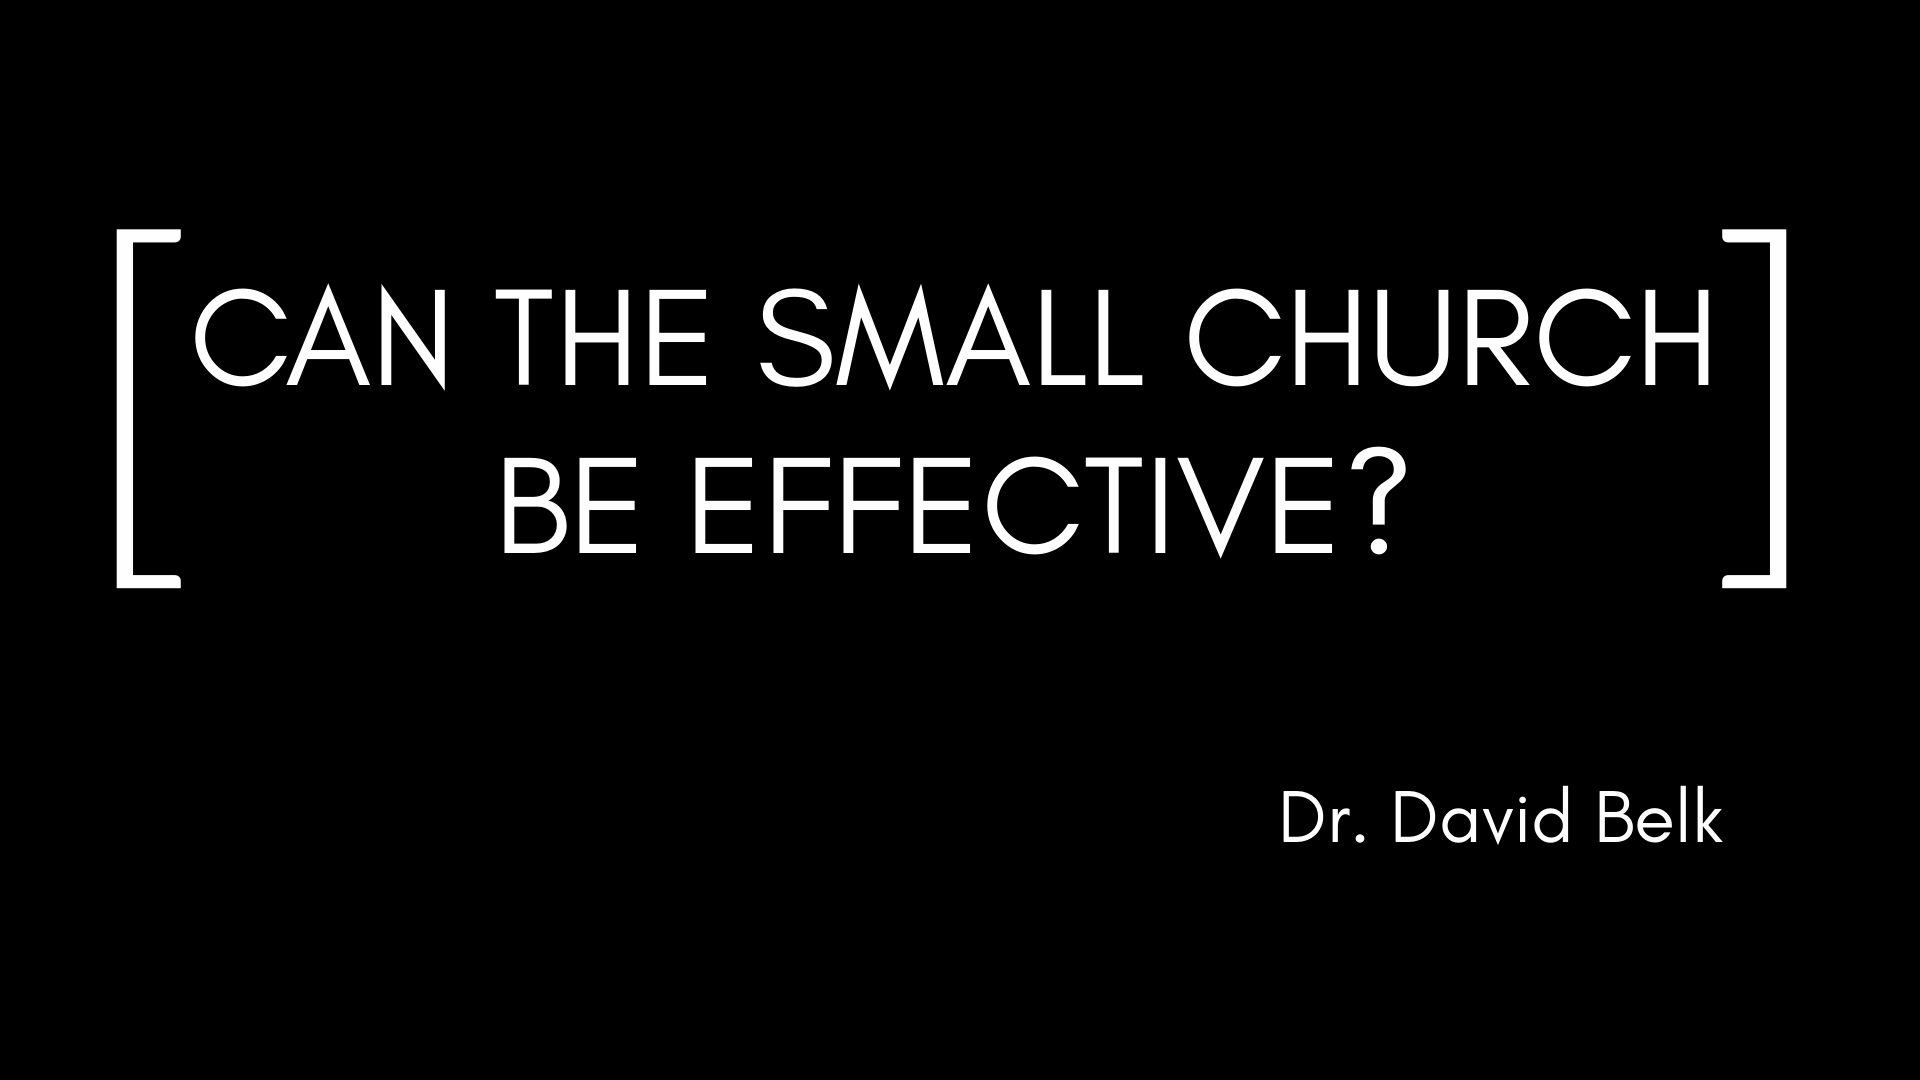 Can the Small Church Be Effective?